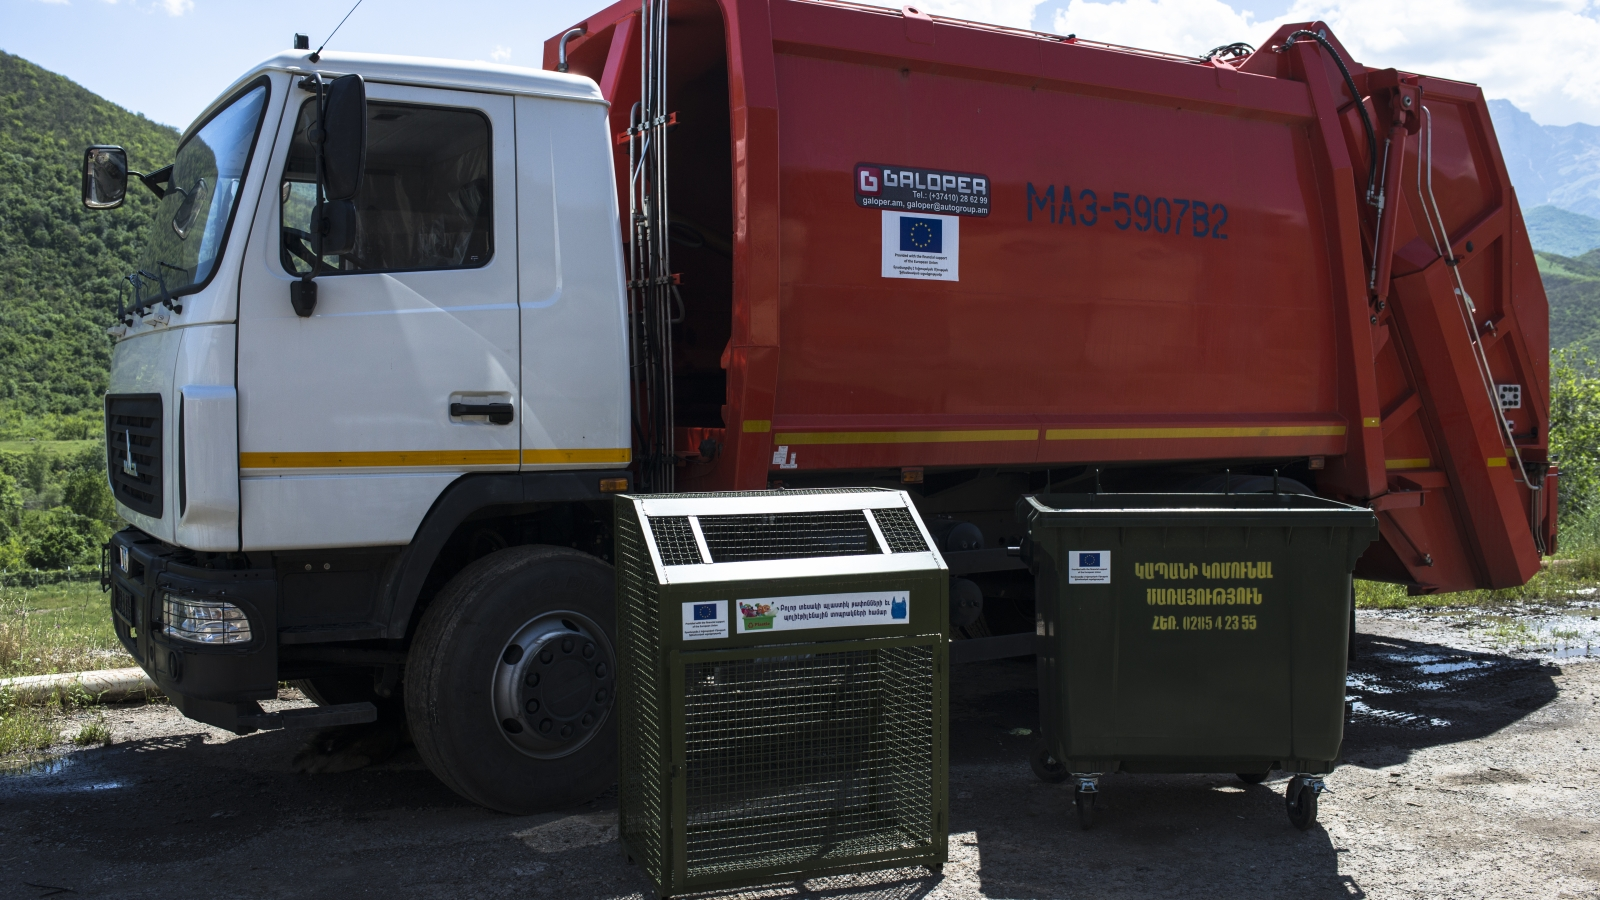 New trash bins and trash car for Kapan city, provided with the financial support of the European Union (May, 2018)